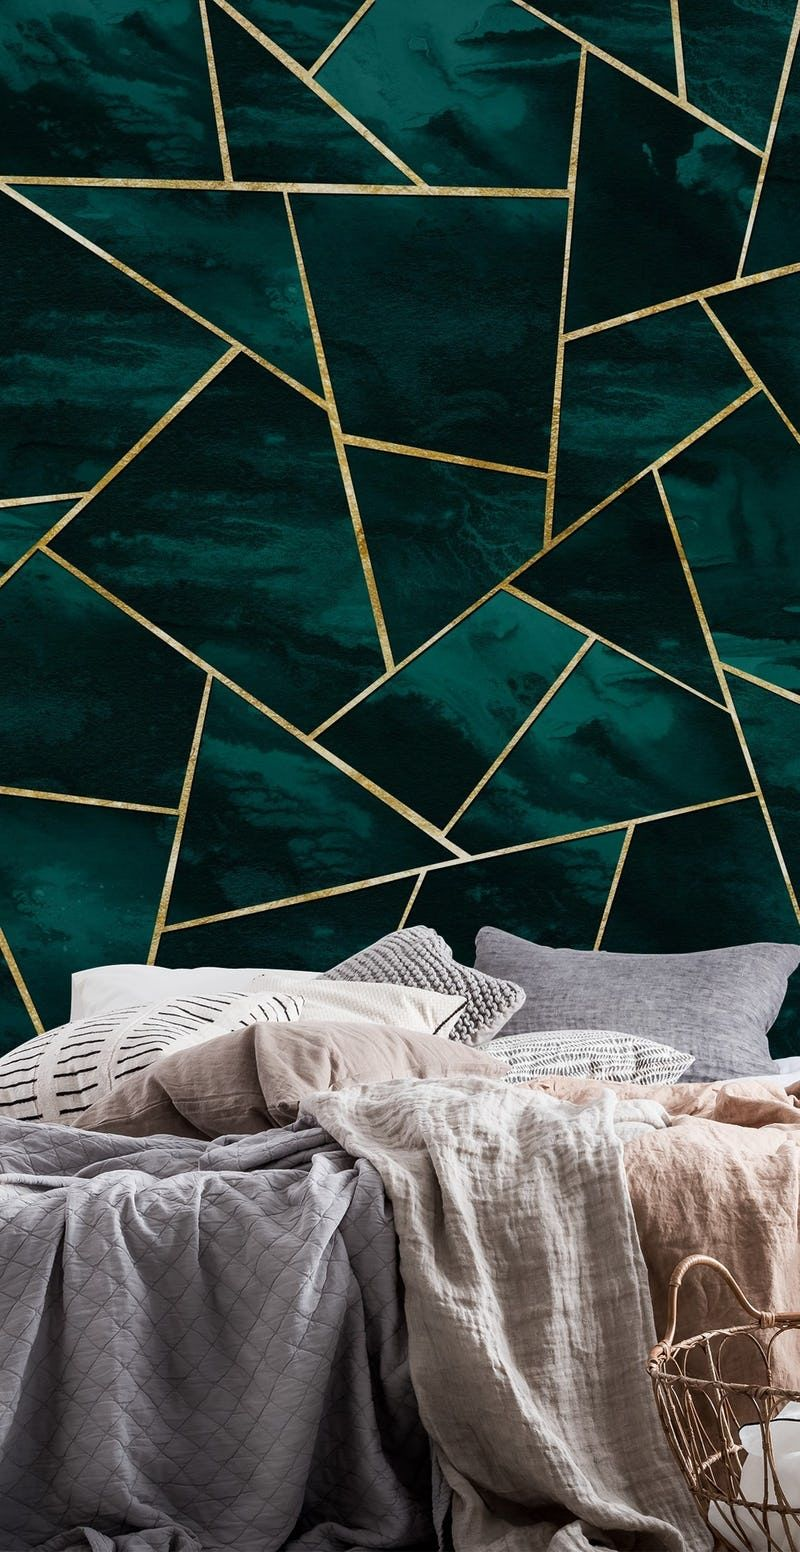 Dark Teal Ink Gold Geometric 1 Wallpaper From Happywall Com Blue And Gold Bedroom Teal Bedroom Decor Teal Rooms